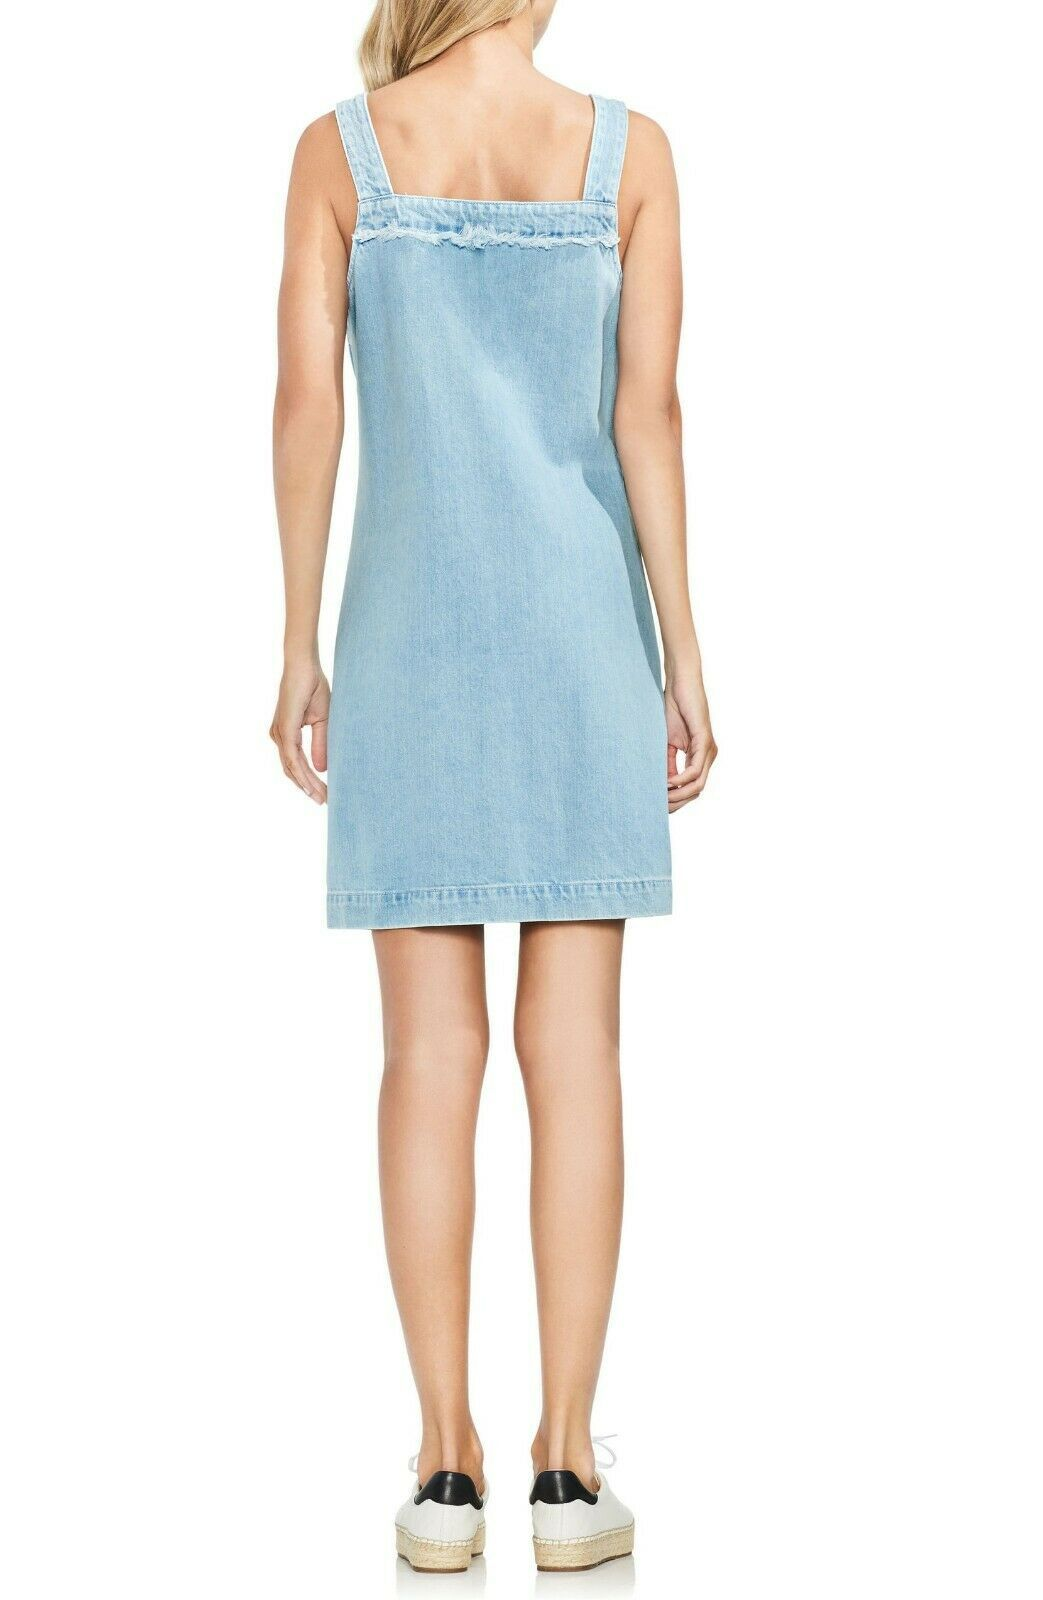 Vince Camuto WOMEN'S Cotton Denim Shift Dress CORISICIA WASH SIZE SMALL